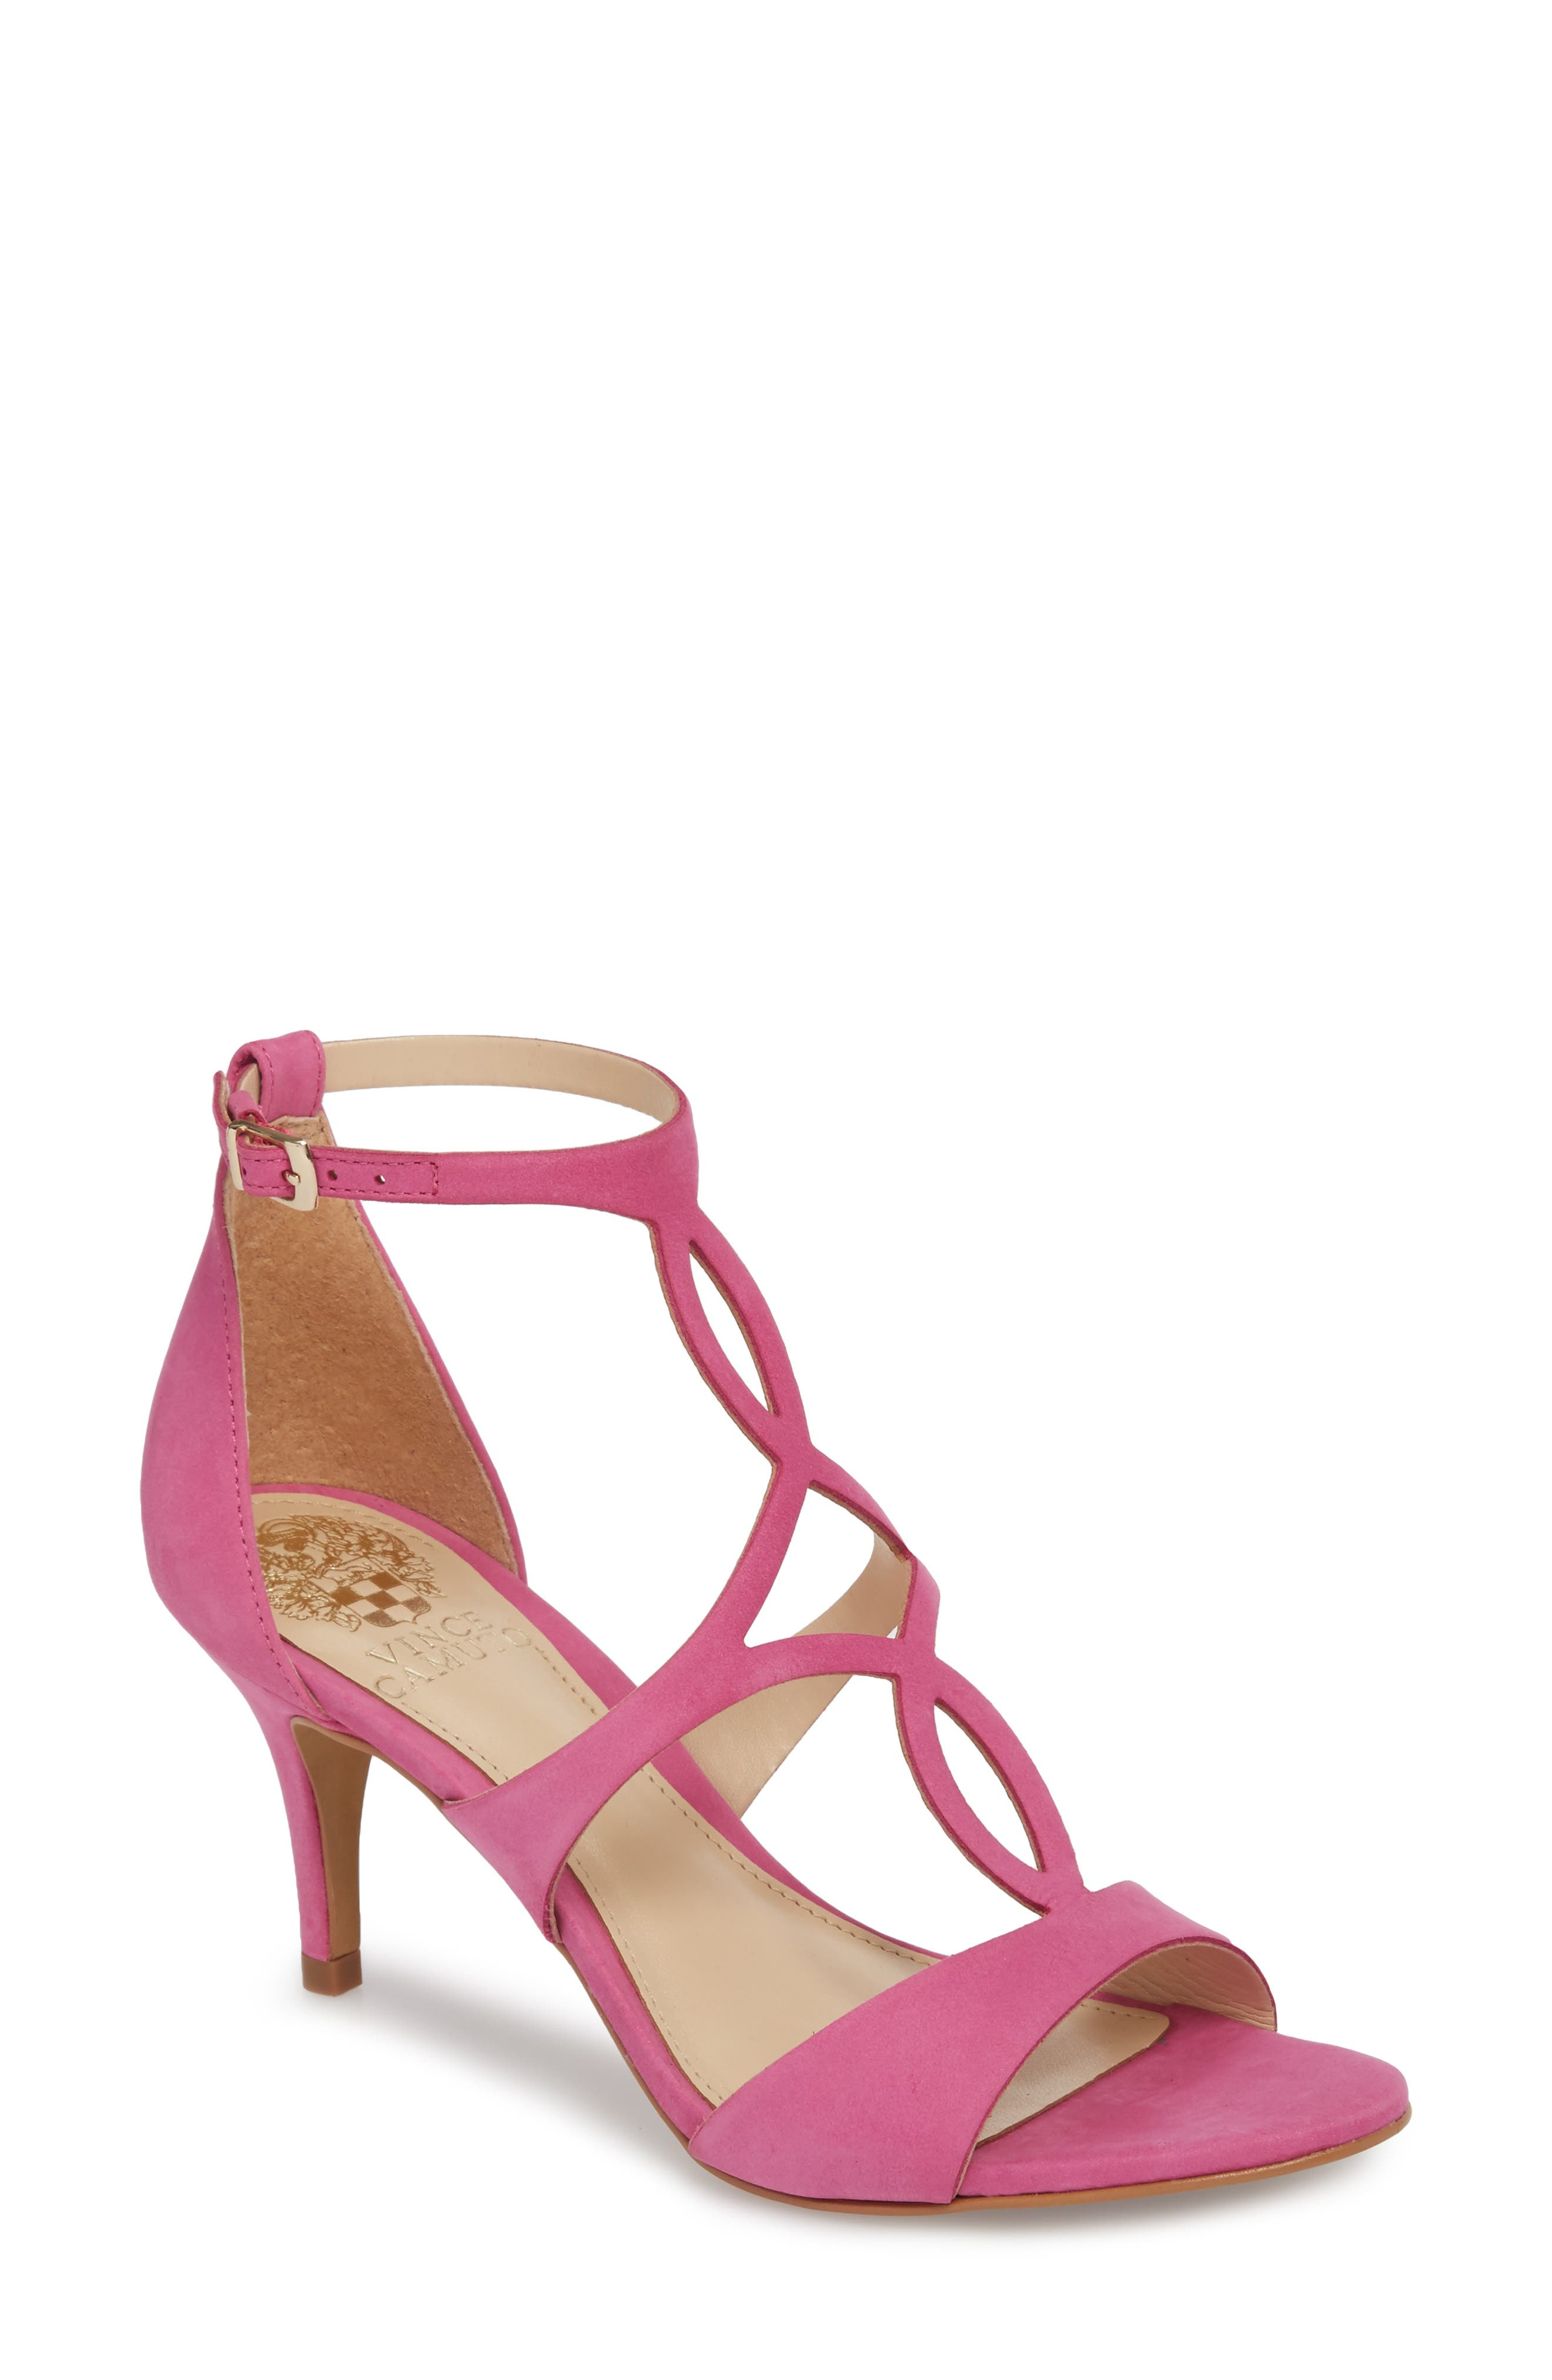 Payto Sandal,                             Main thumbnail 1, color,                             Pink Leather